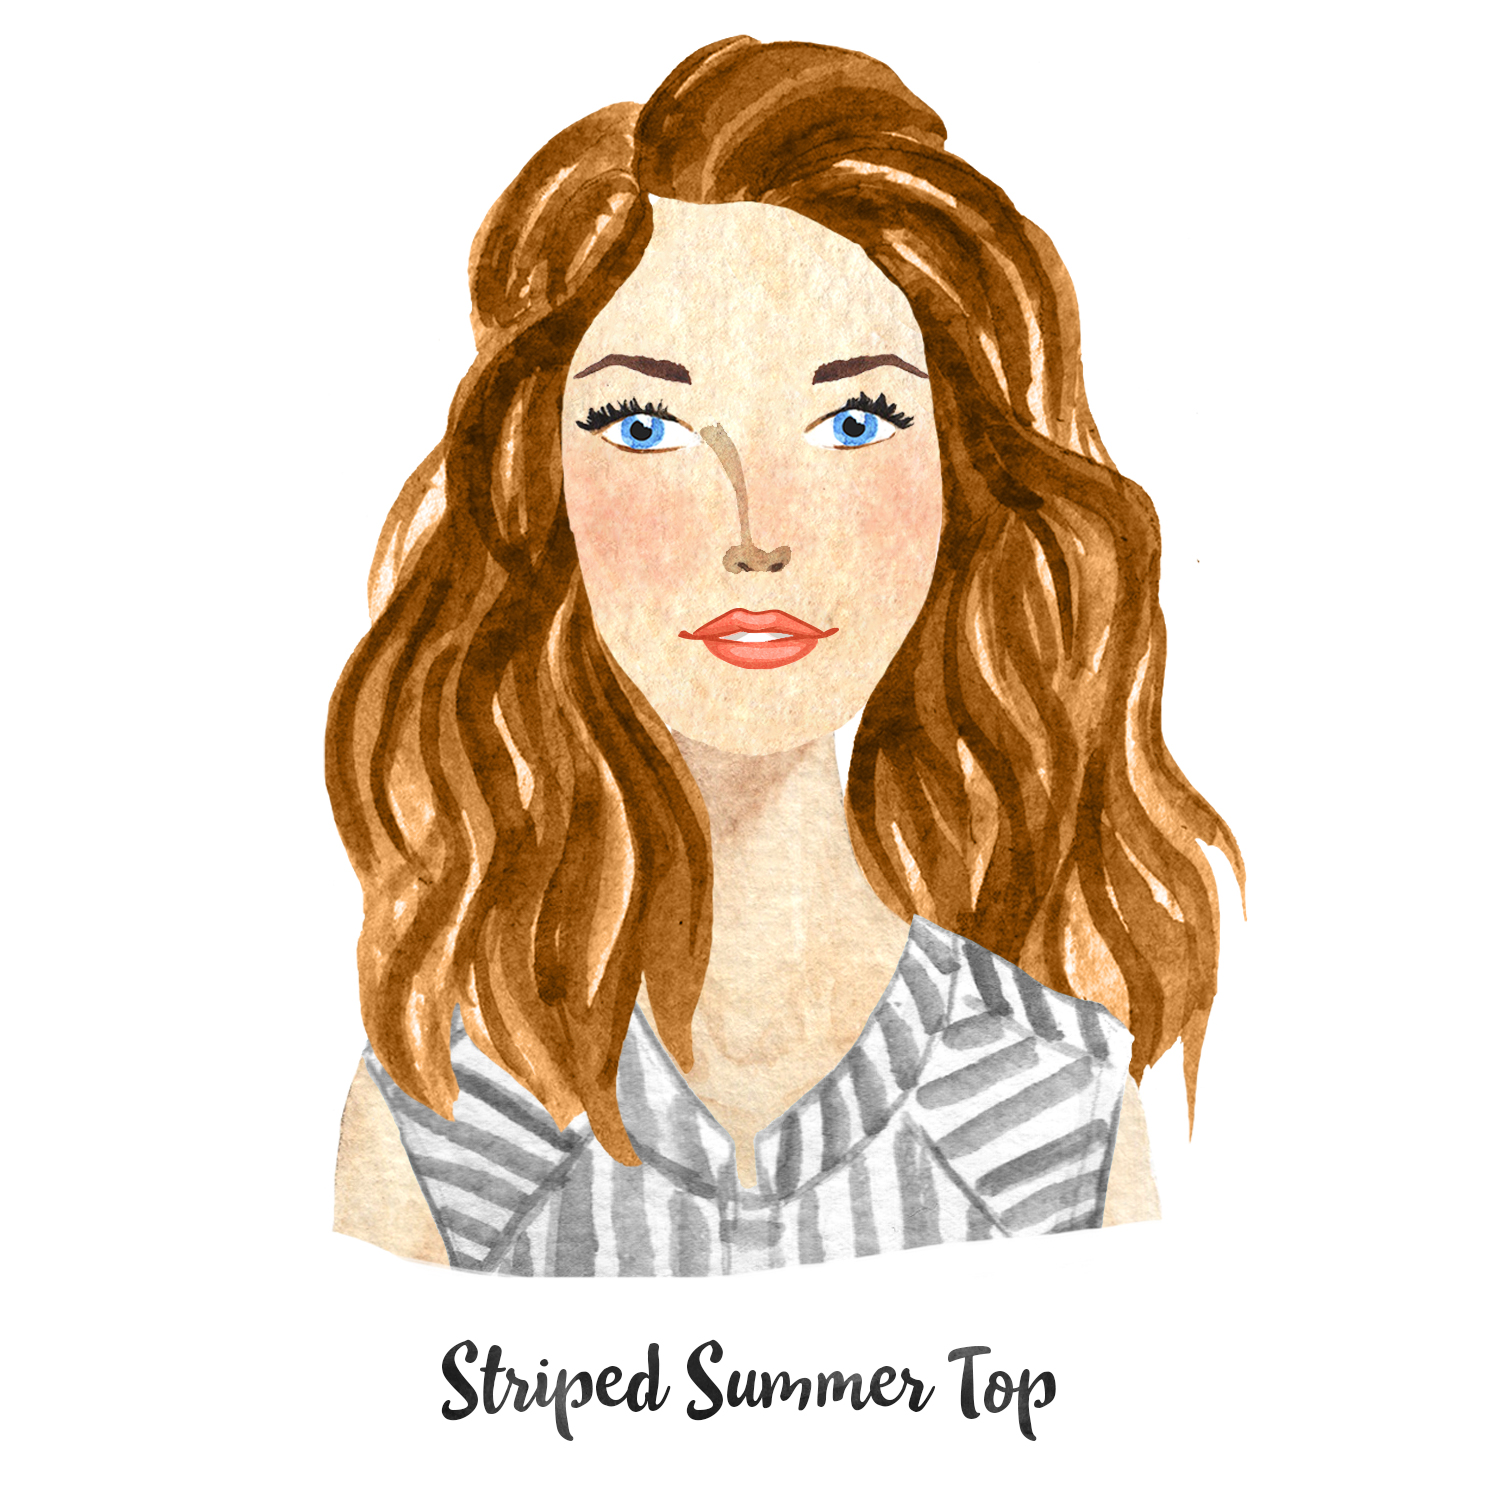 Striped Summer Top.jpg